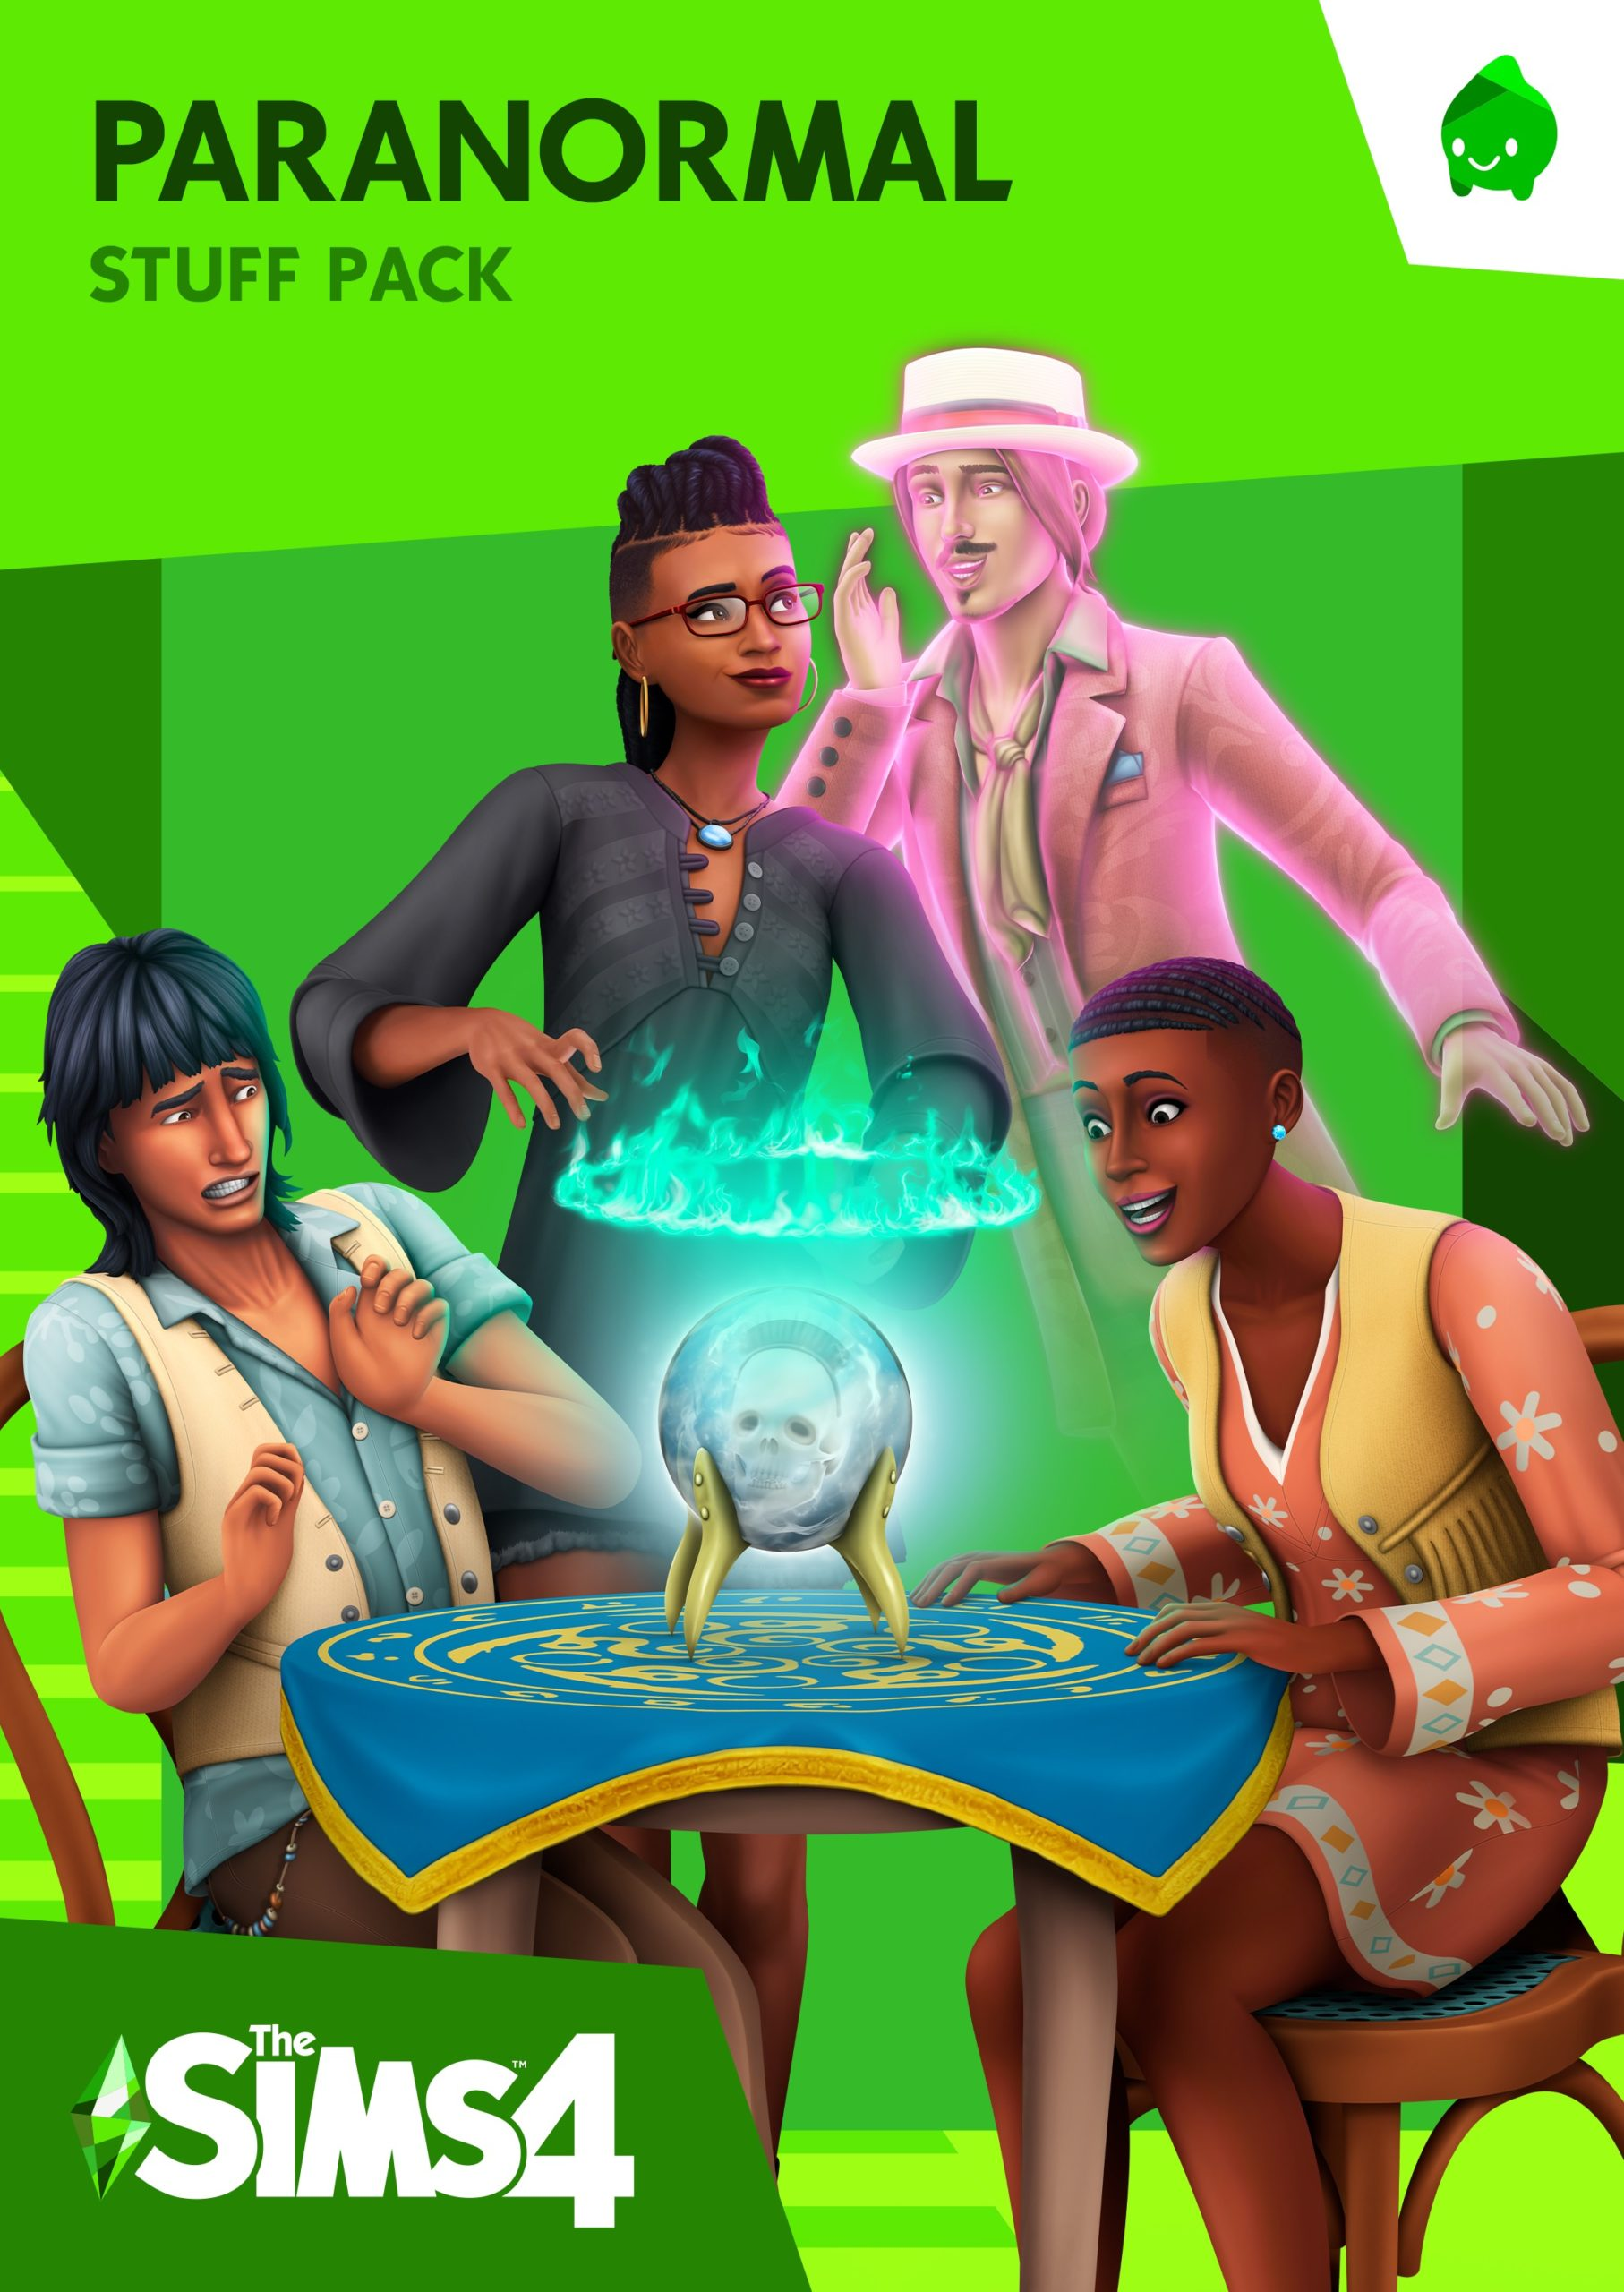 The Sims 4 Fenomeni Paranormali Stuff Pack ora disponibile